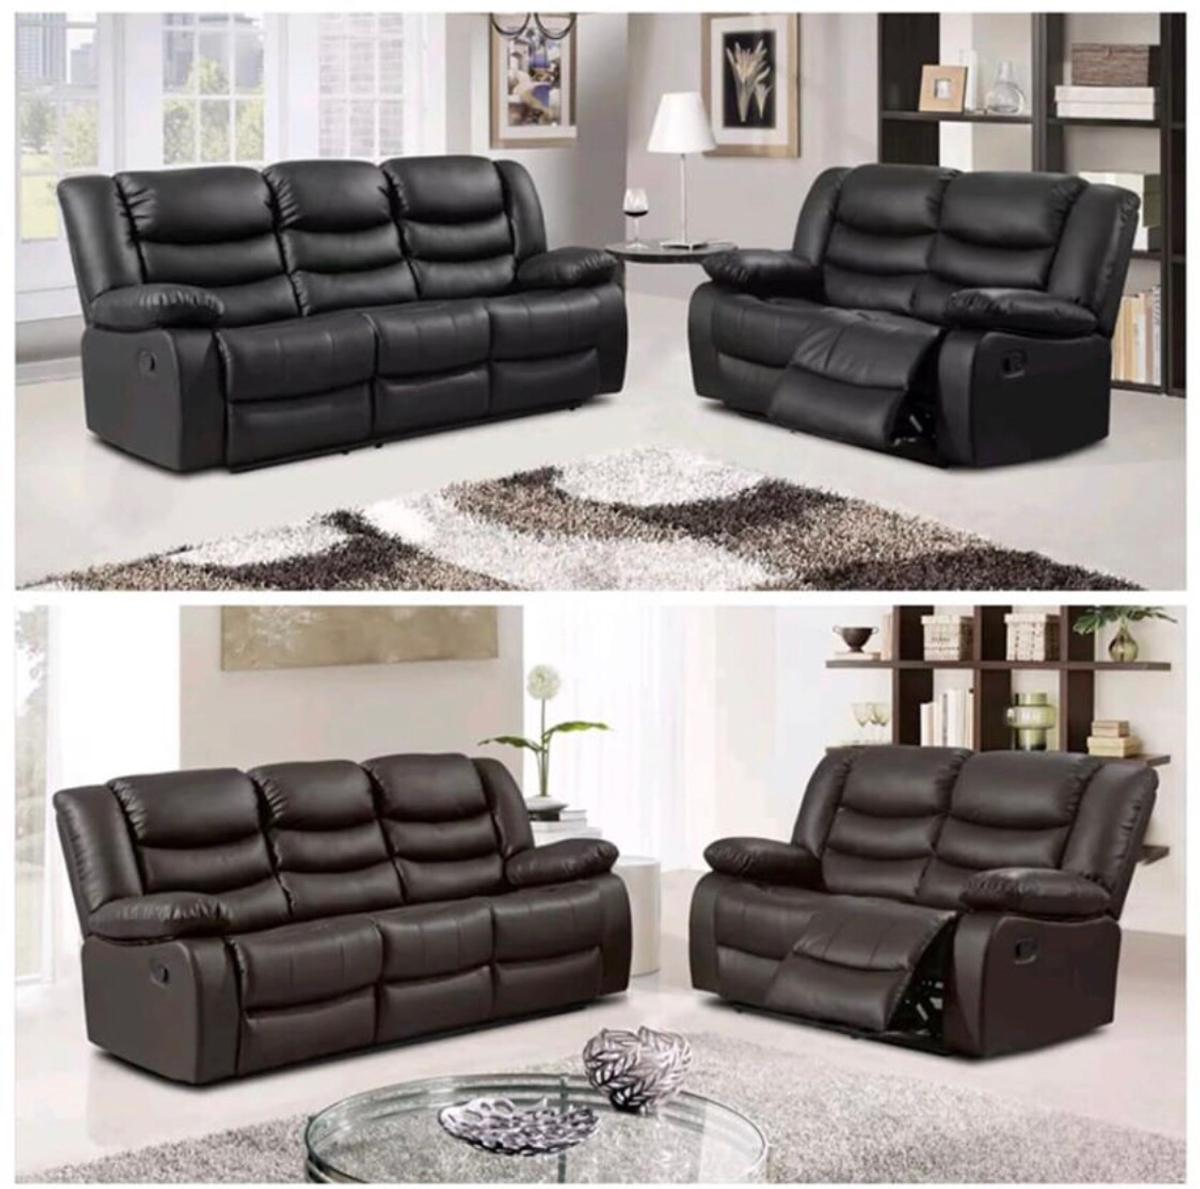 New Leather Recliner Sofa Cup Holders 3 2